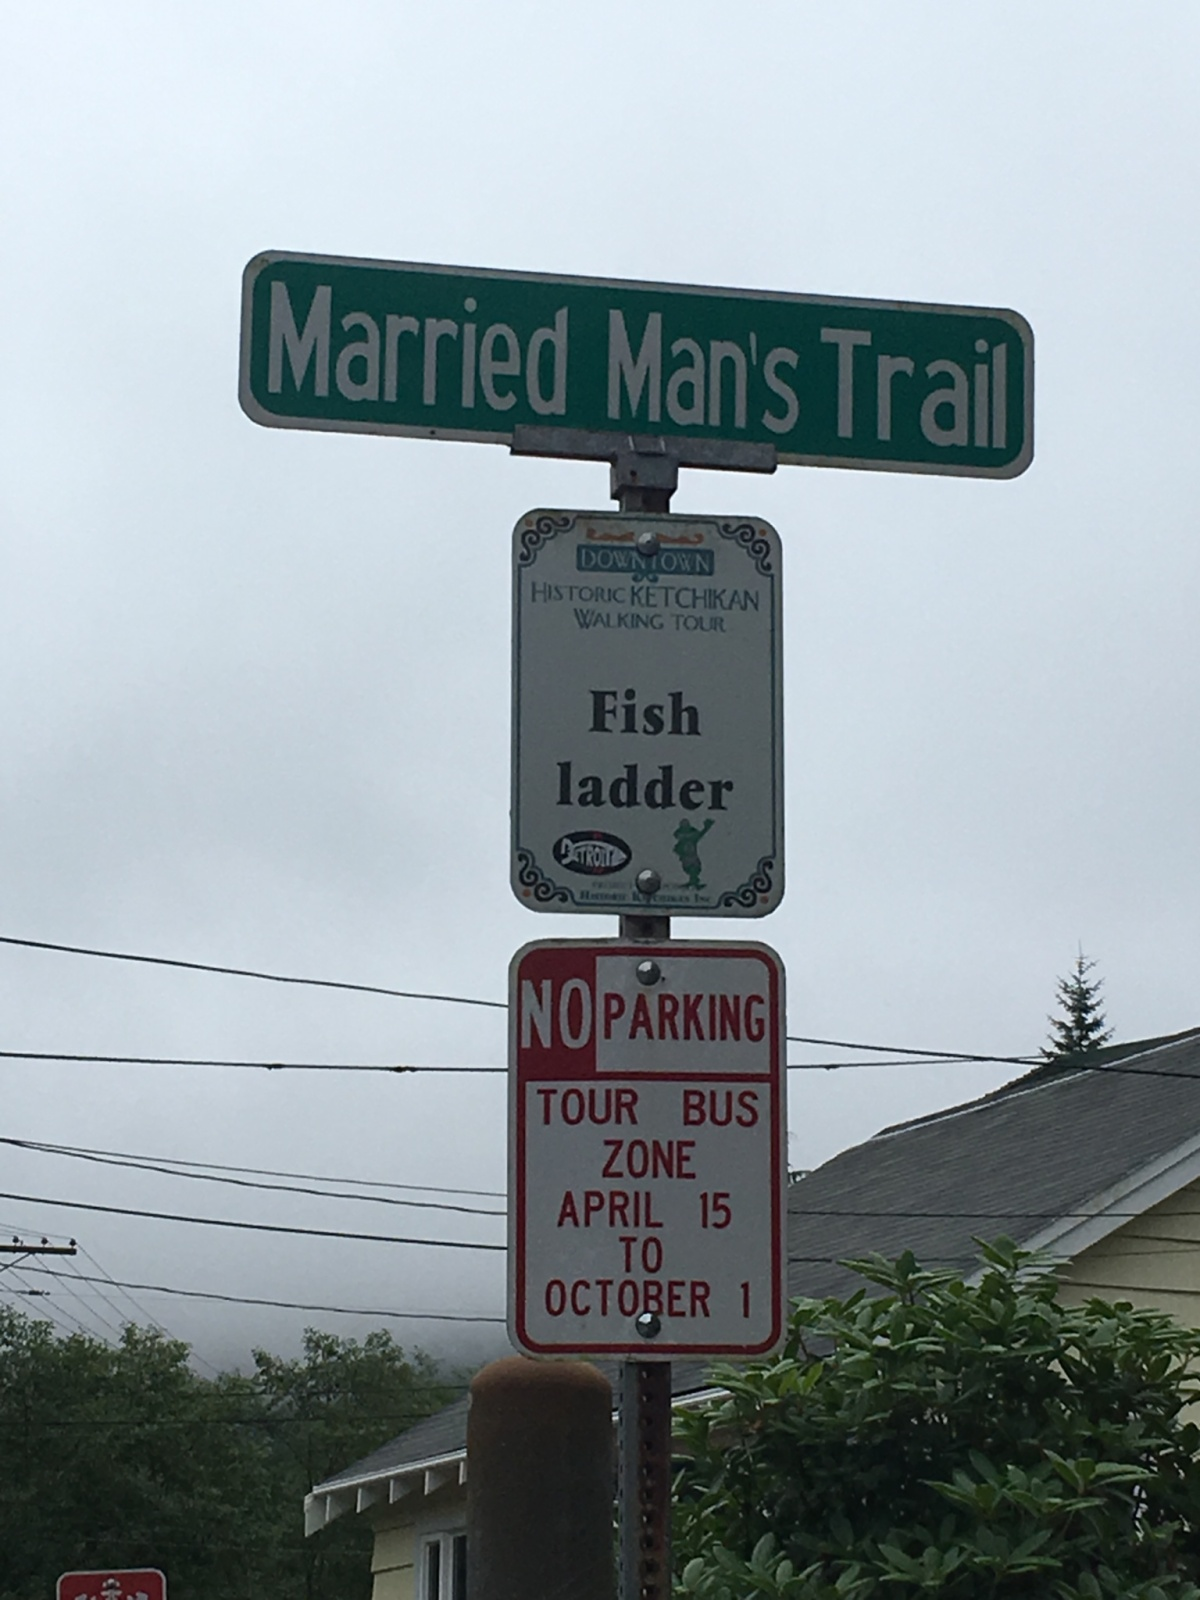 Married Man's Trail